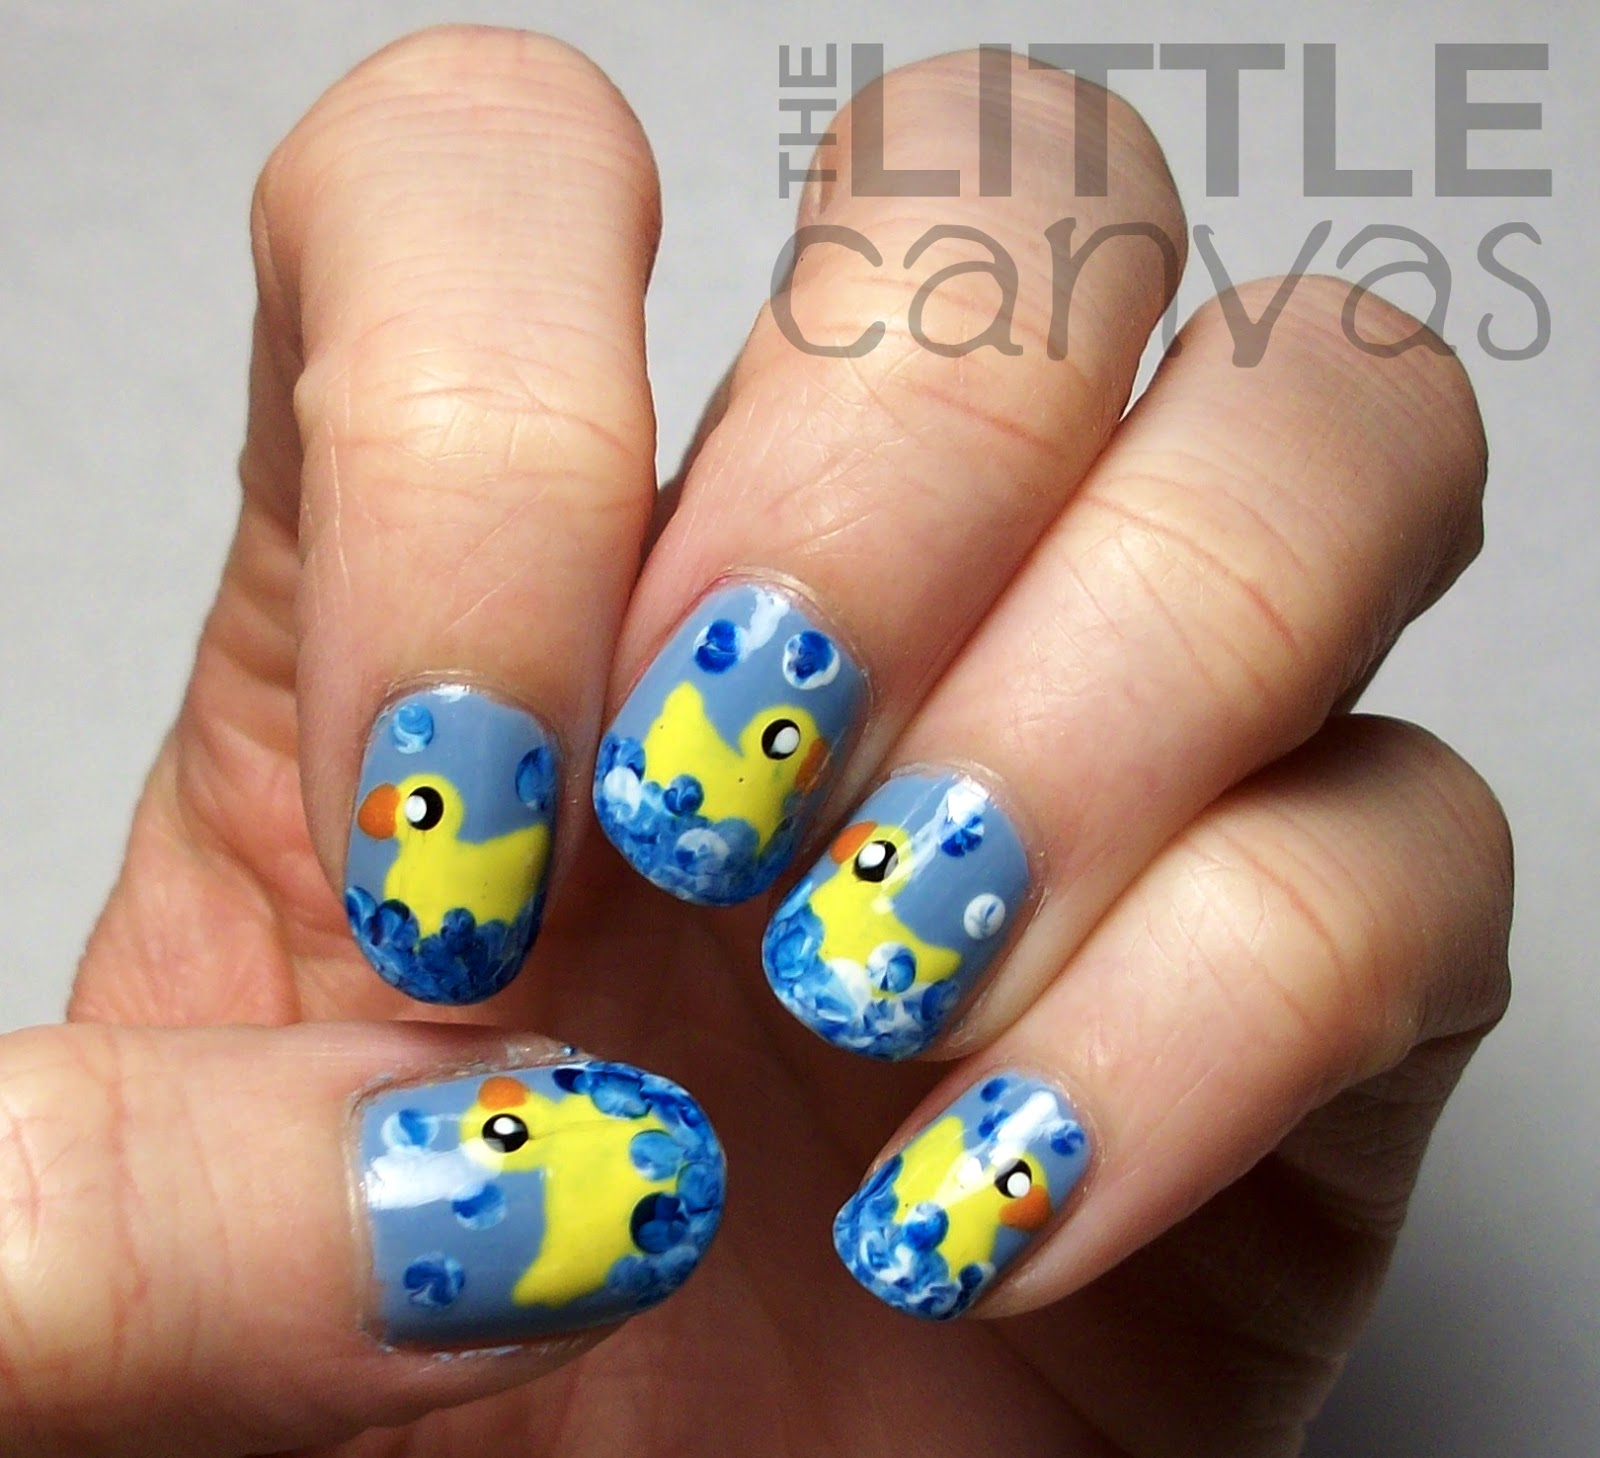 The Little Canvas: Rubber Ducky Nail Art Revisited!